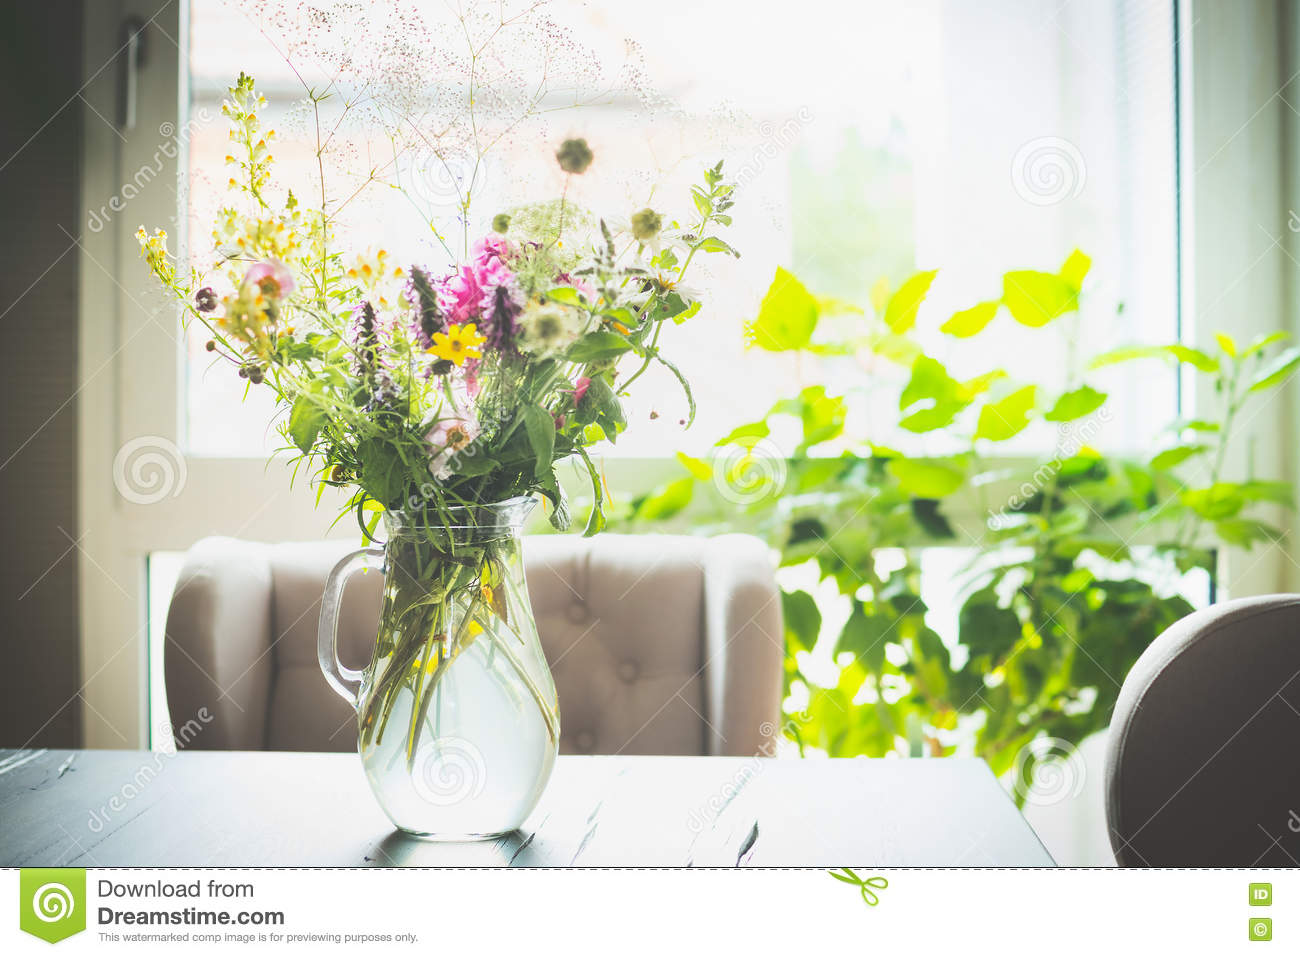 Hortensien In Der Wohnung Bouquet Of Flowers In A Glass Vase On Table In Front Of A